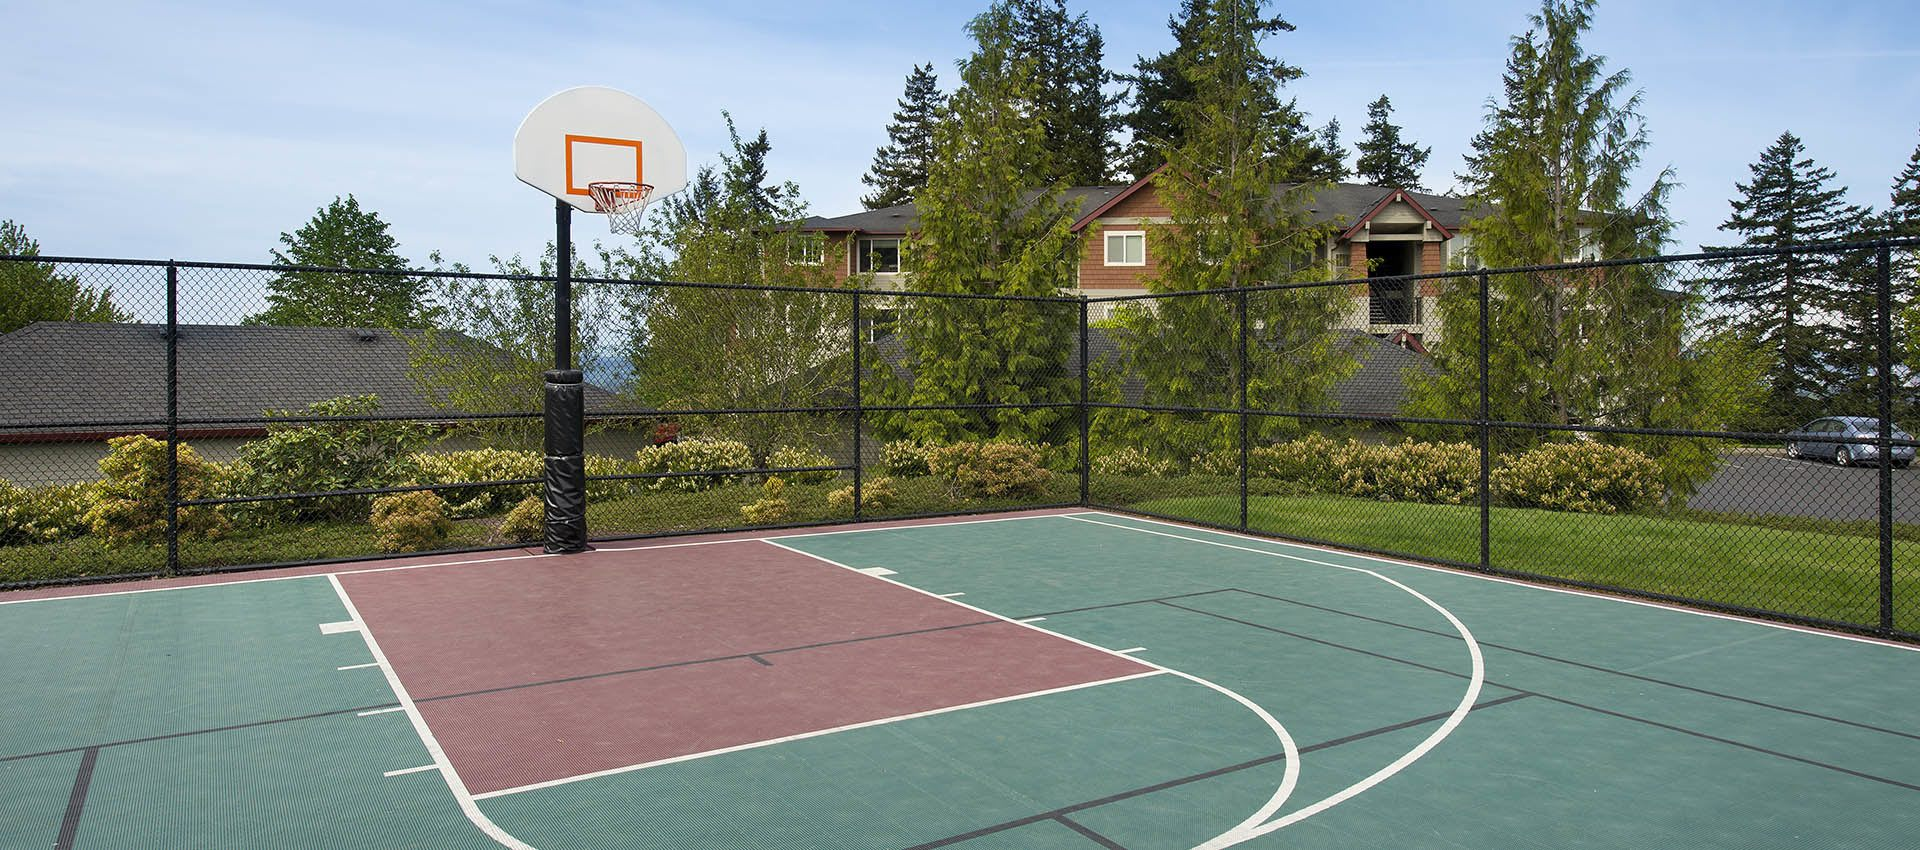 Sports Court at Altamont Summit in OR